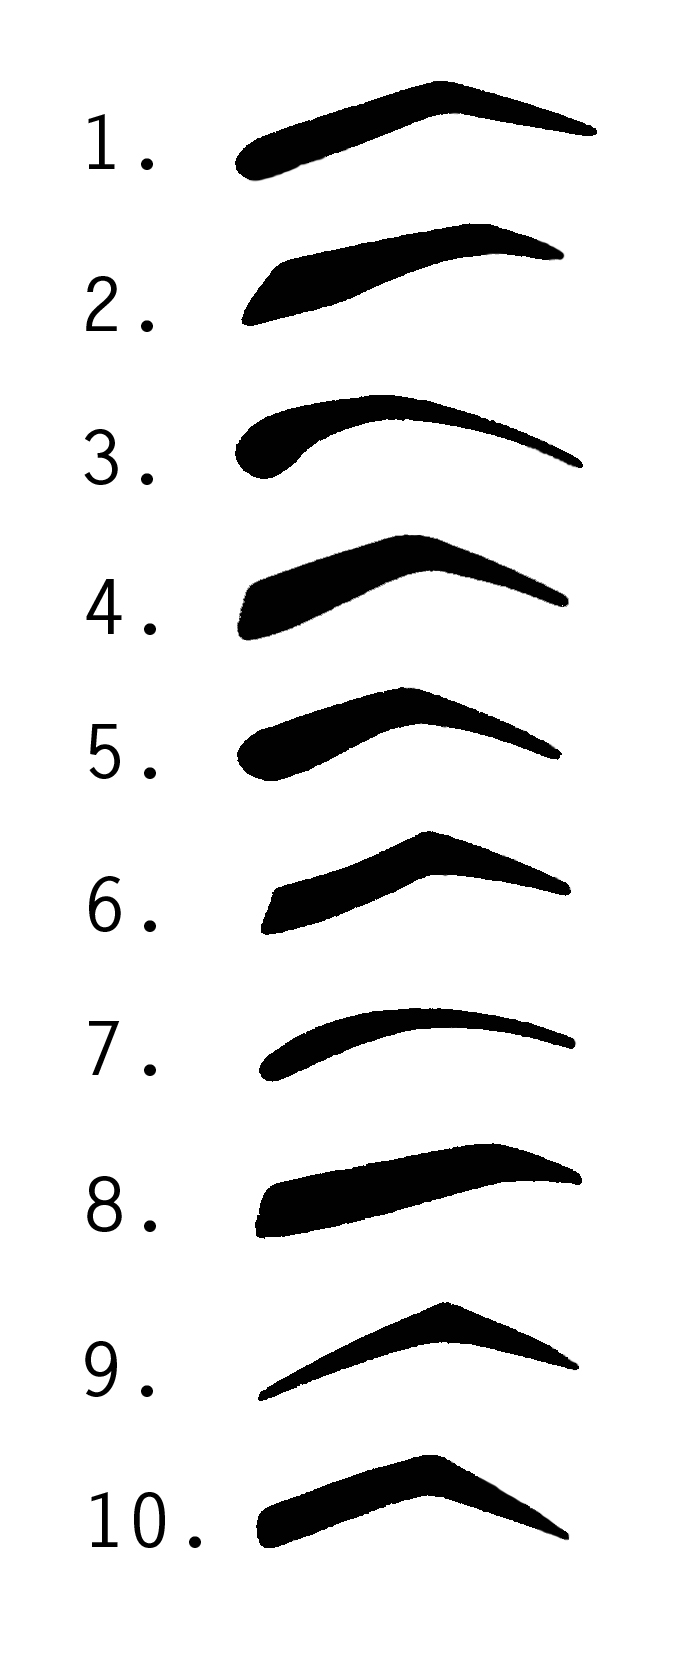 Eyebrow Number.jpg